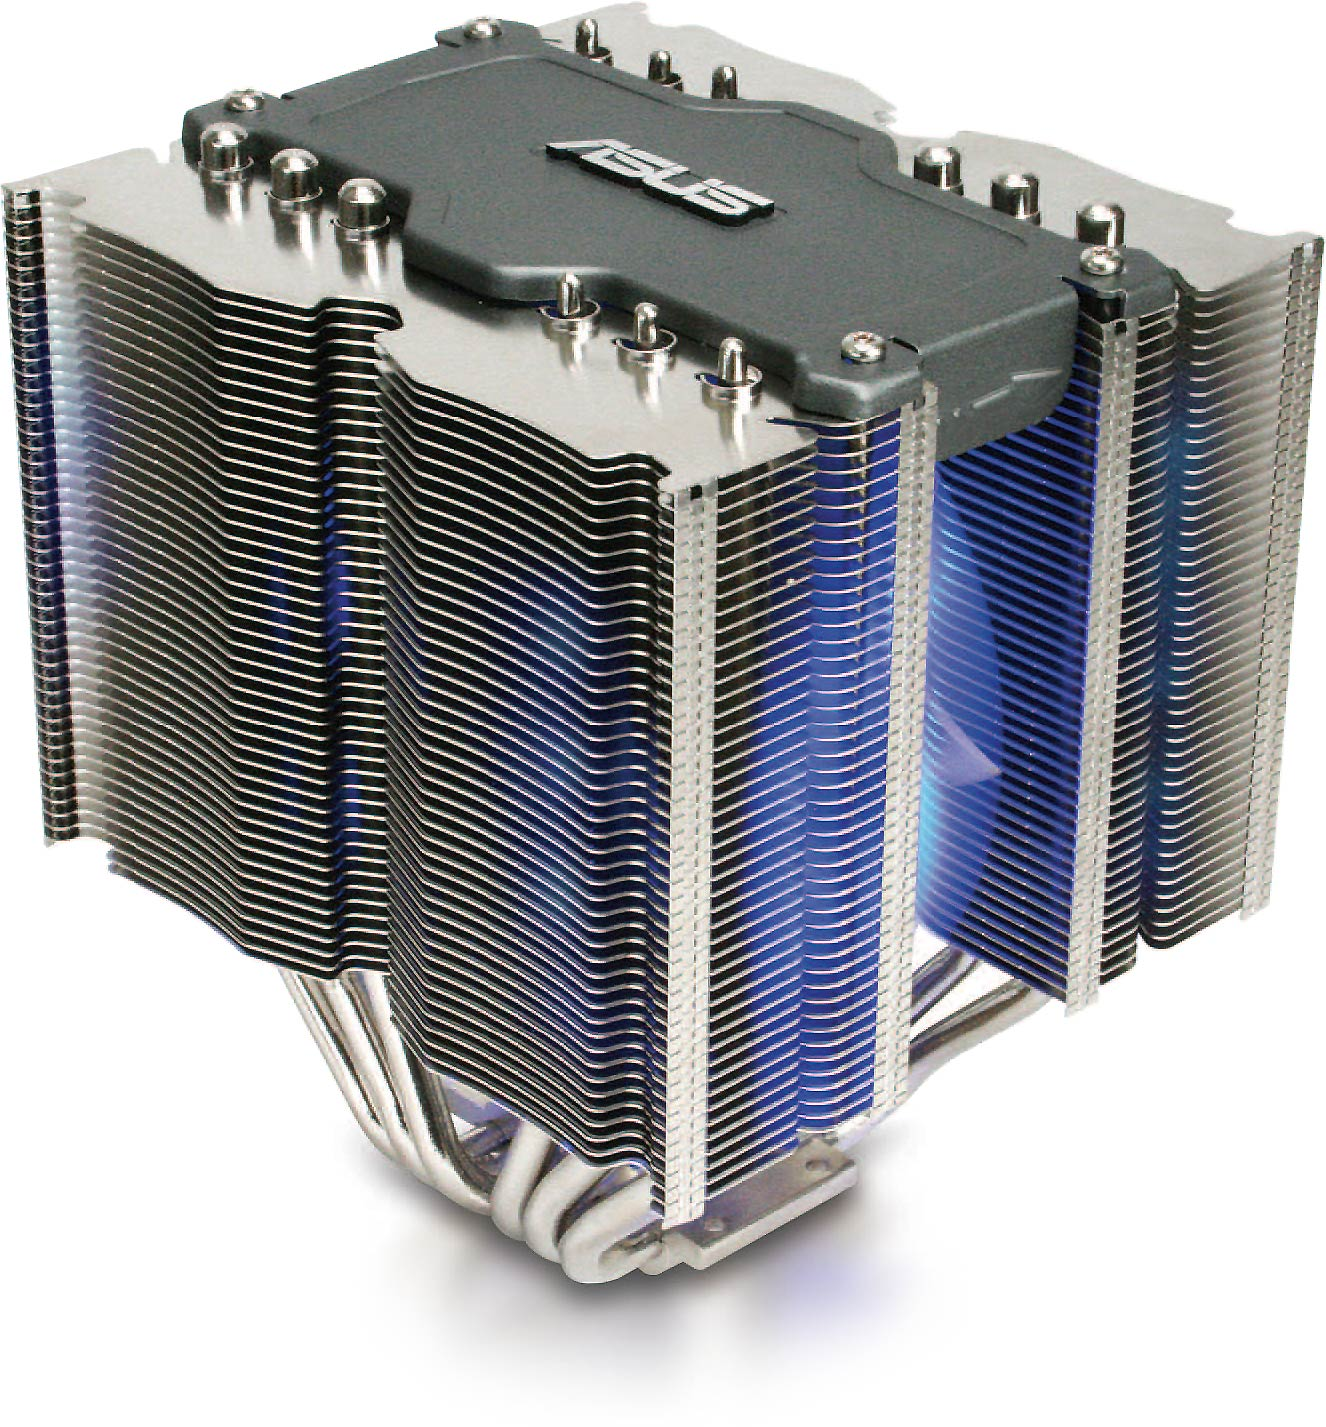 Cpu Air Cooler : Triton quiet cpu cooler lga